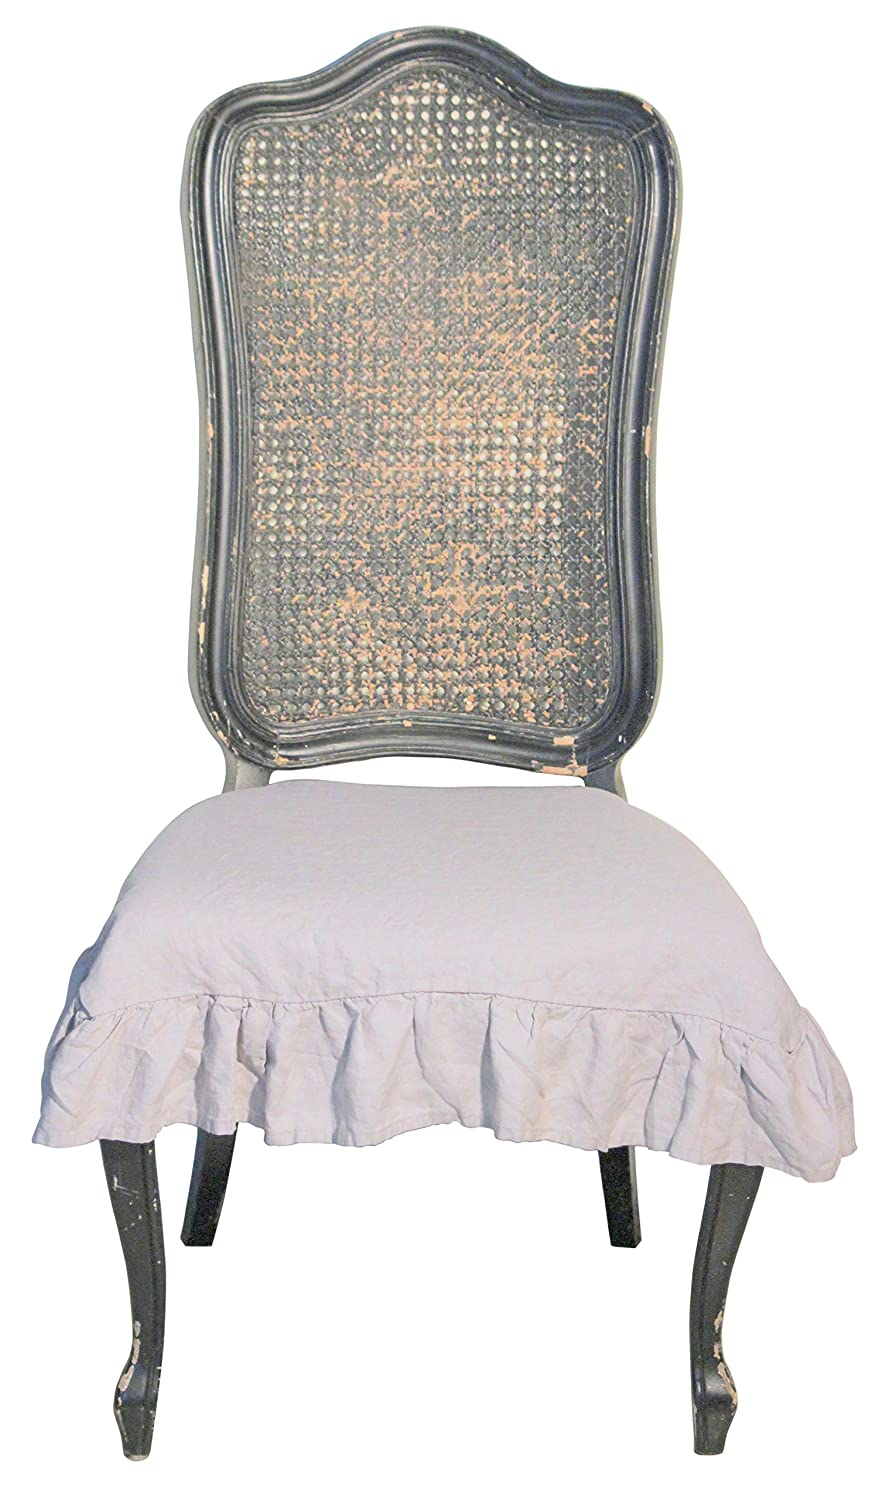 100 Slipcovers For Dining Room Chair Seats 521 Best  : 81bTTZhAe7LSL1500 from 45.76.23.192 size 879 x 1500 jpeg 188kB